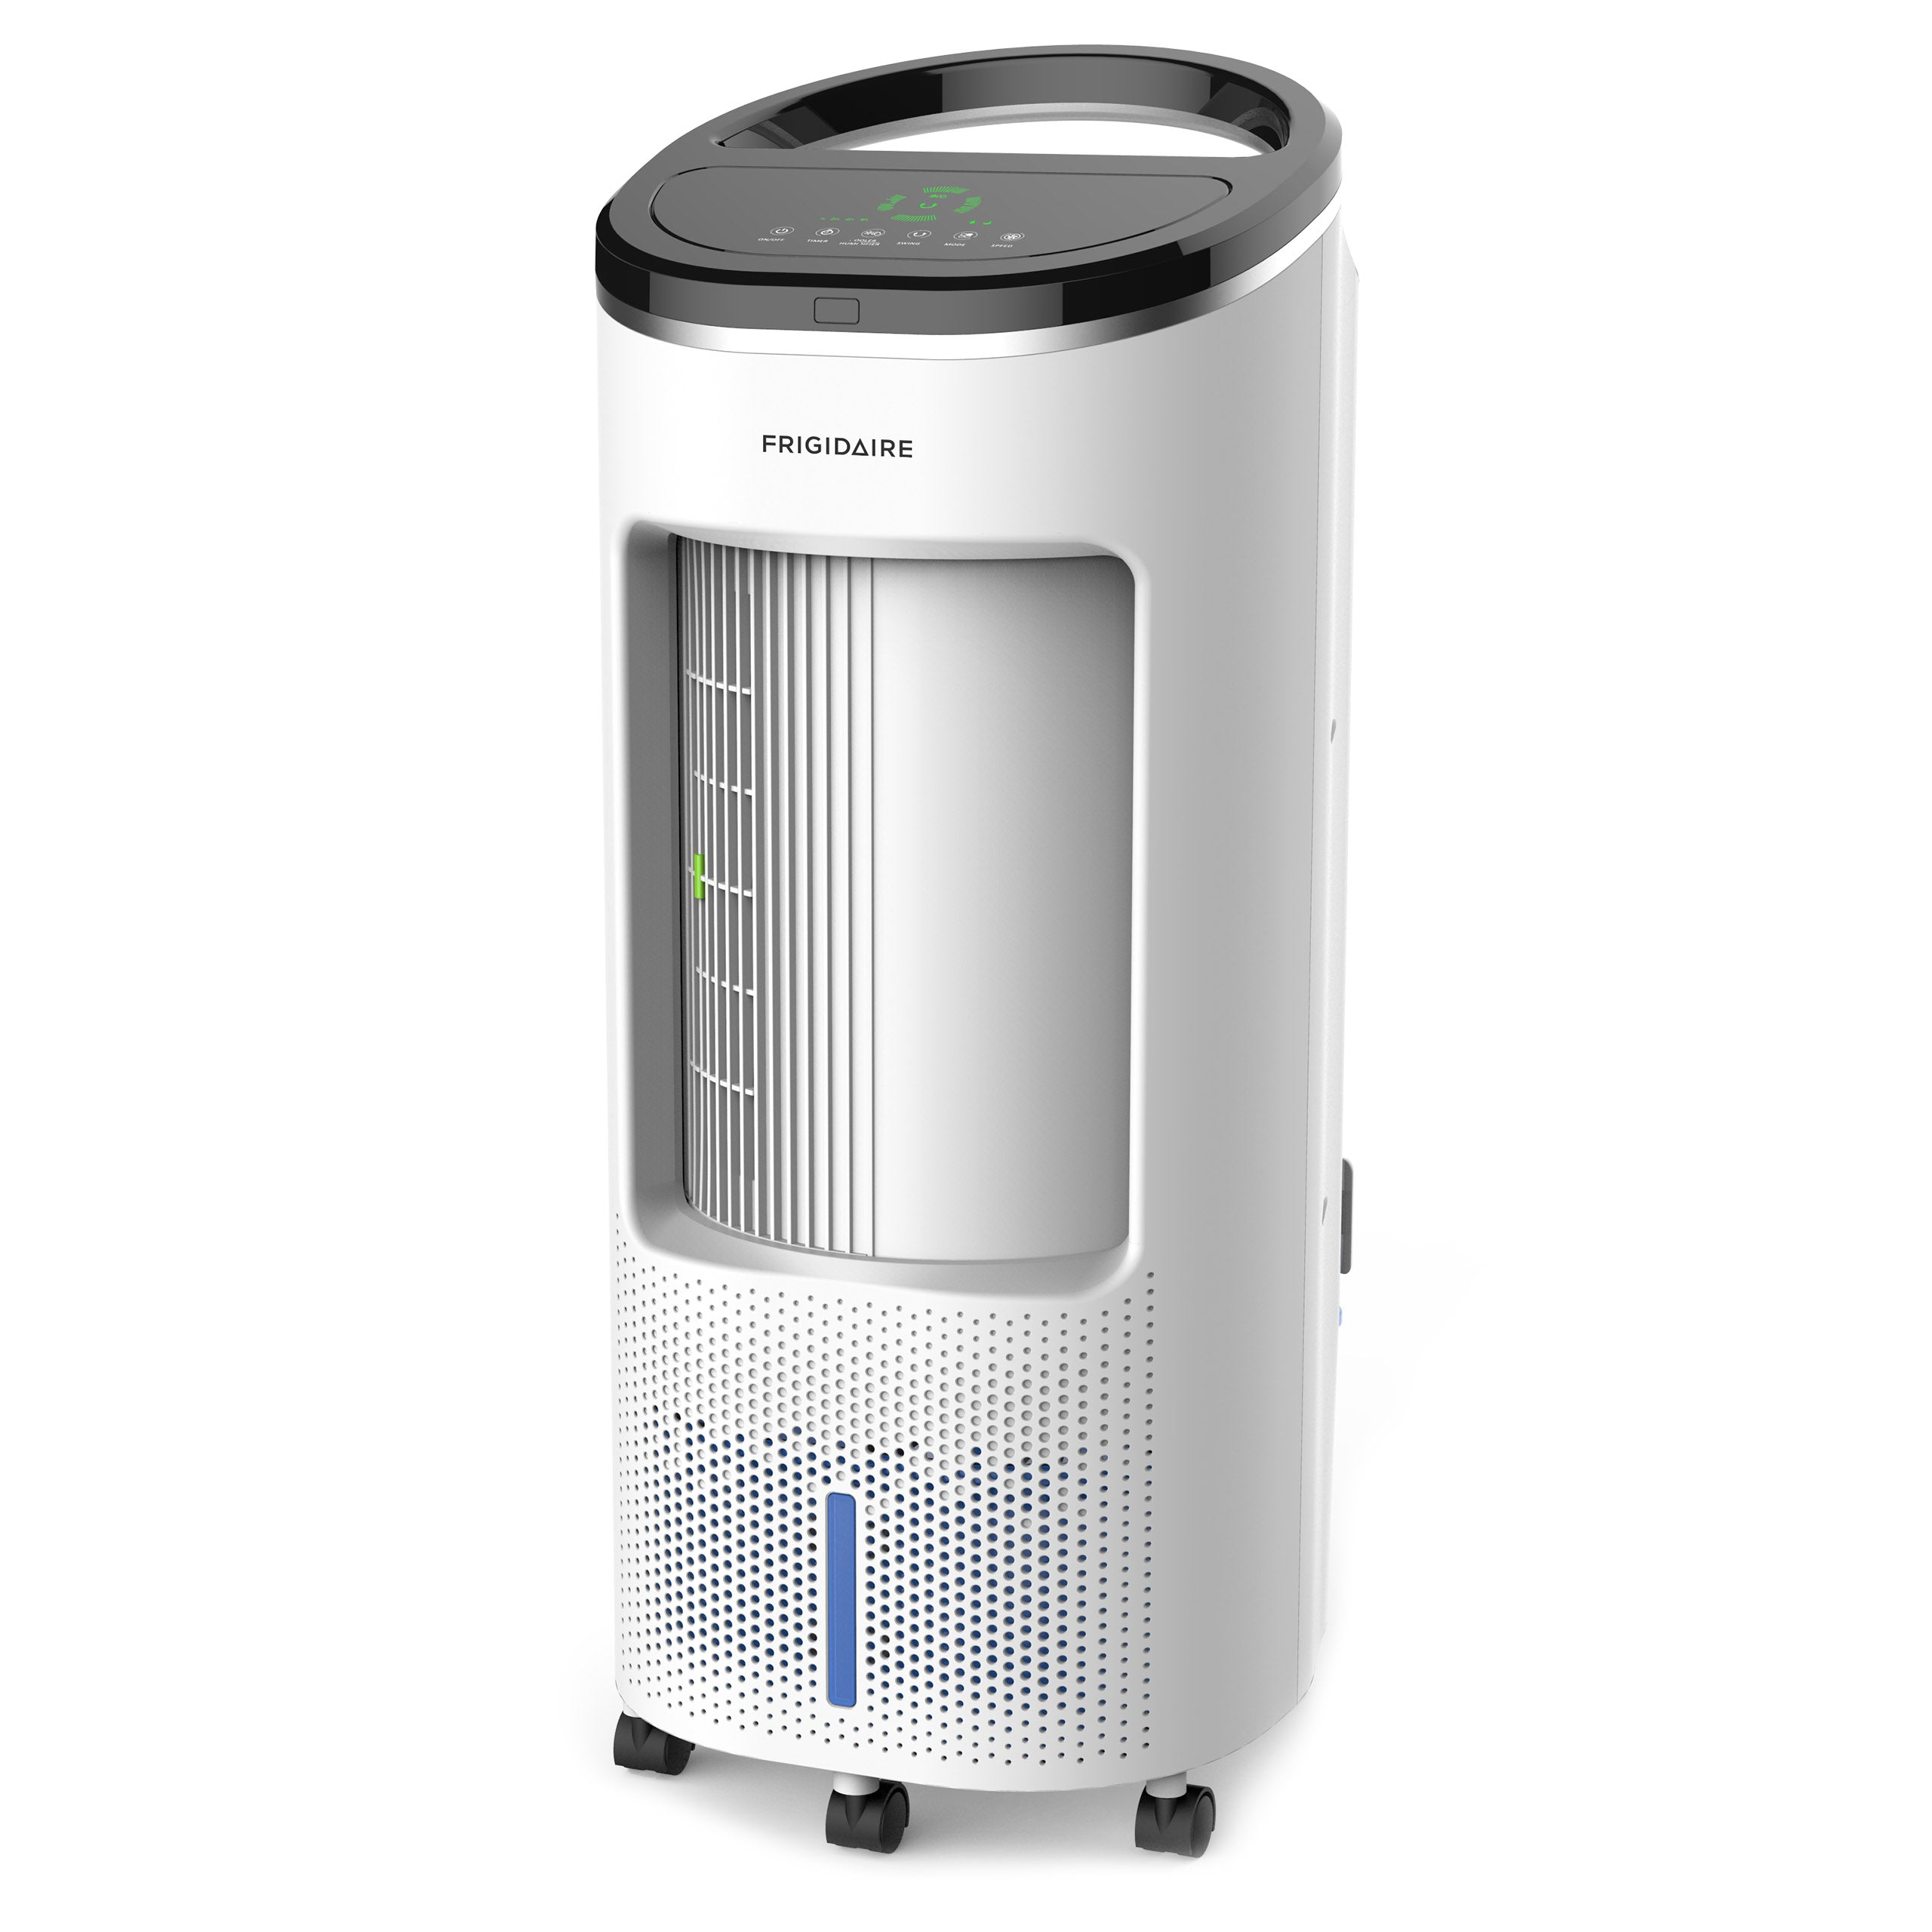 Frigidaire_2in1_Evaporative_Air_Cooler_and_Fan_250_sq_ft_with_Wide_Angle_Oscillation_&_4_Fan_Speeds